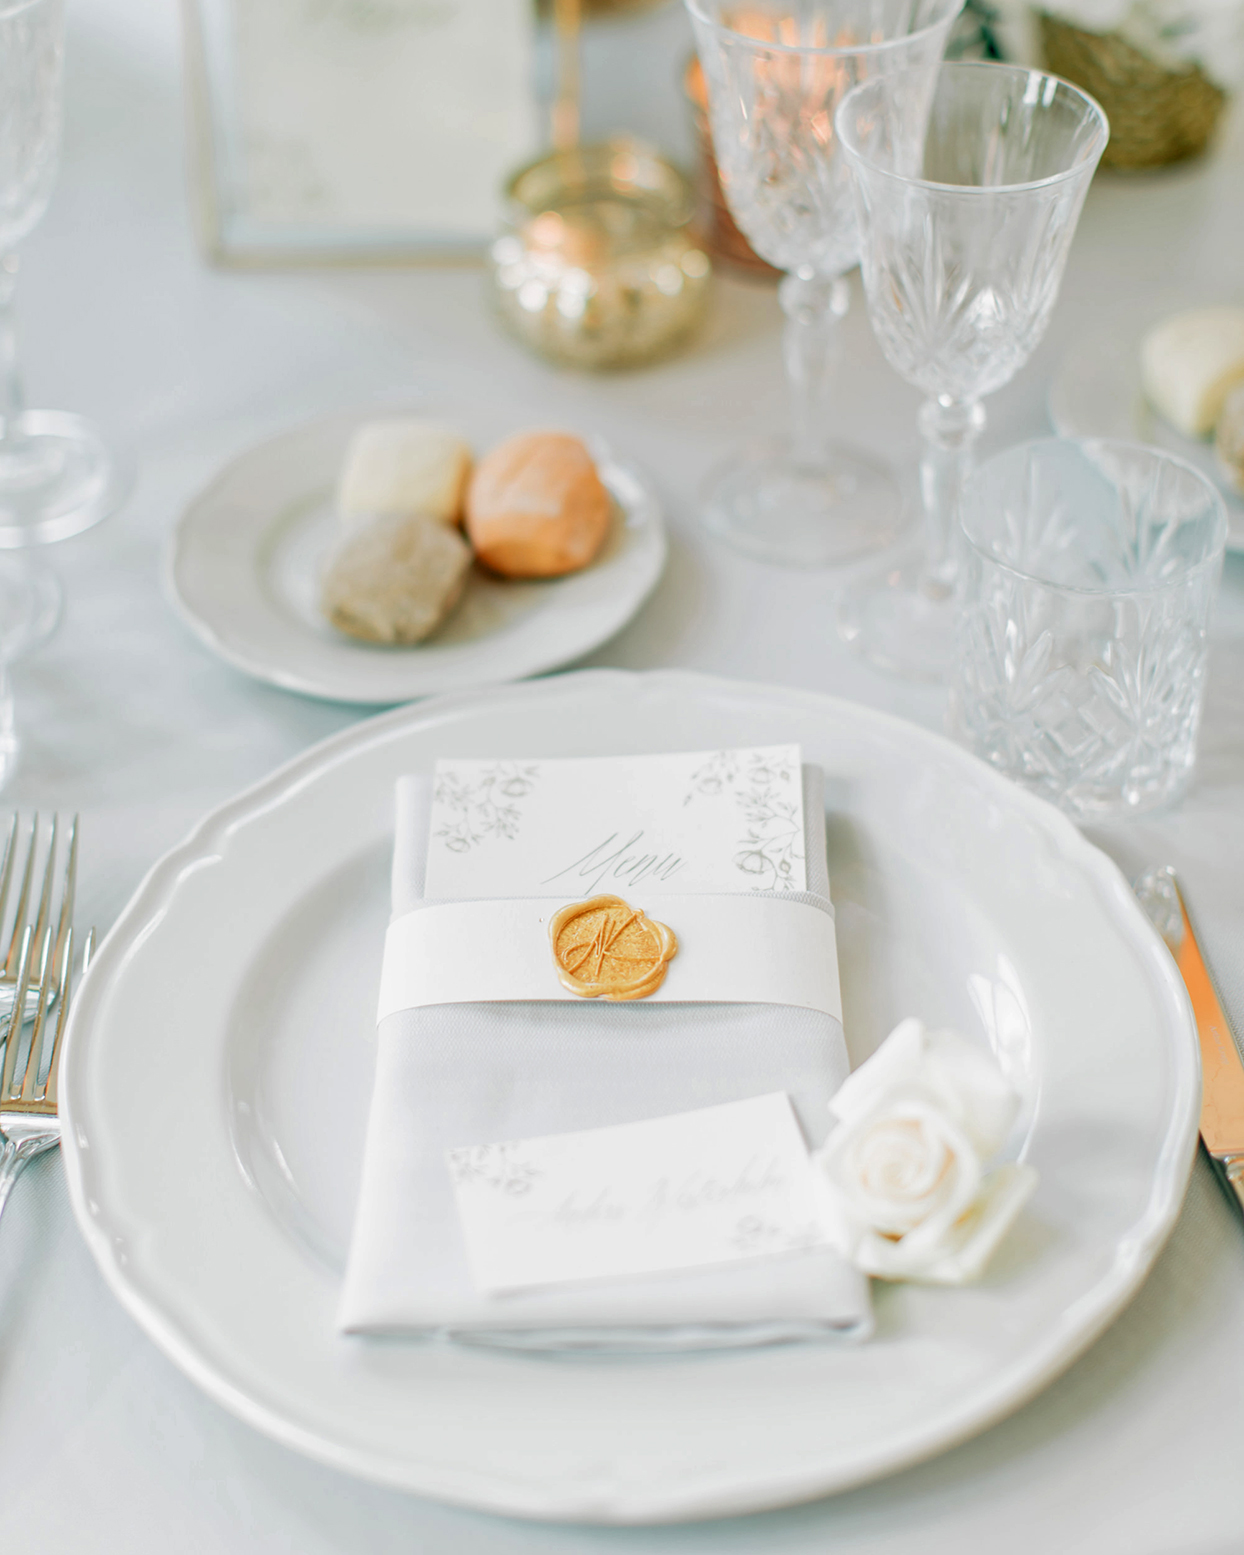 kiira arthur wedding elegant white and gold place setting